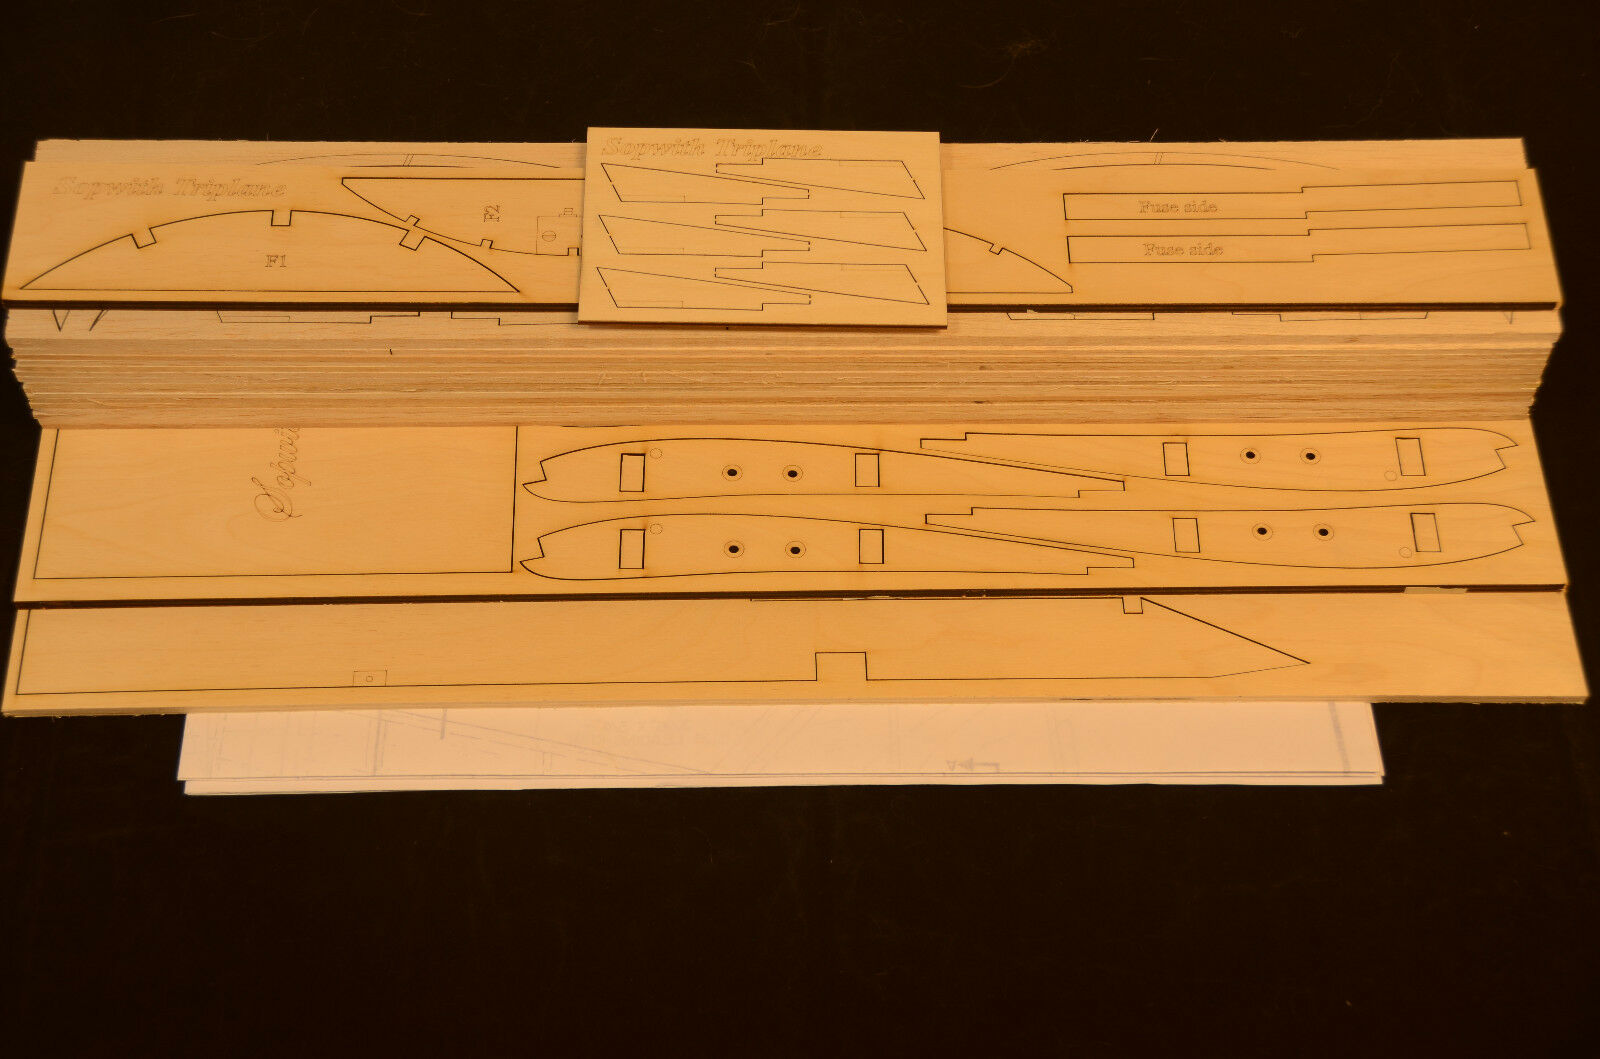 Giant 1 4 Scale SOPWITH TRIPLANE Laser Cut Short Kit & Plans 79.5 in. Wing span